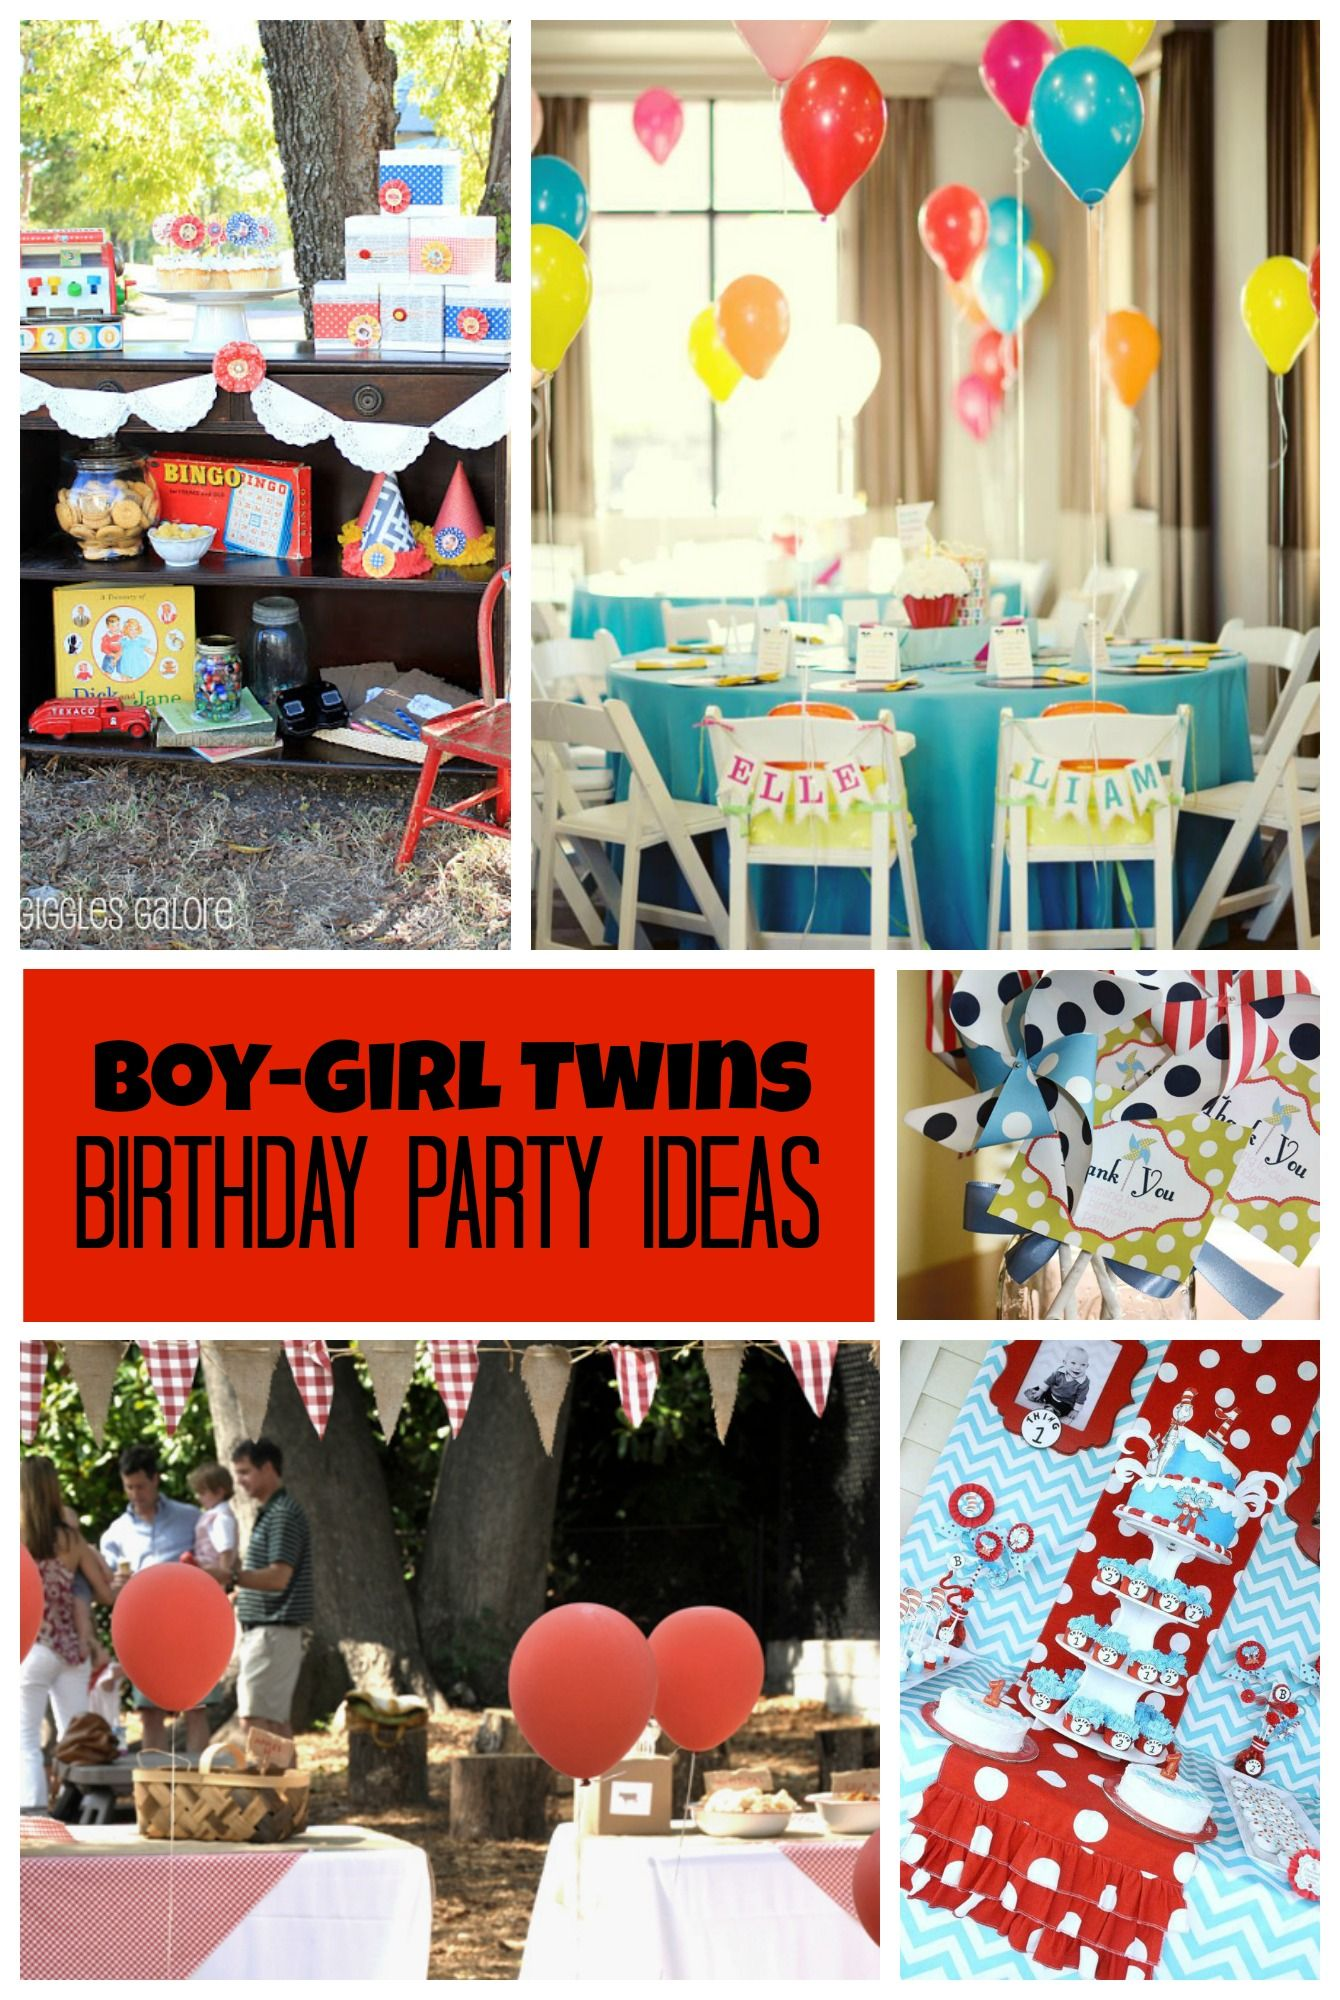 Twins Birthday Party Ideas for Boy Girl Twins Twin birthday